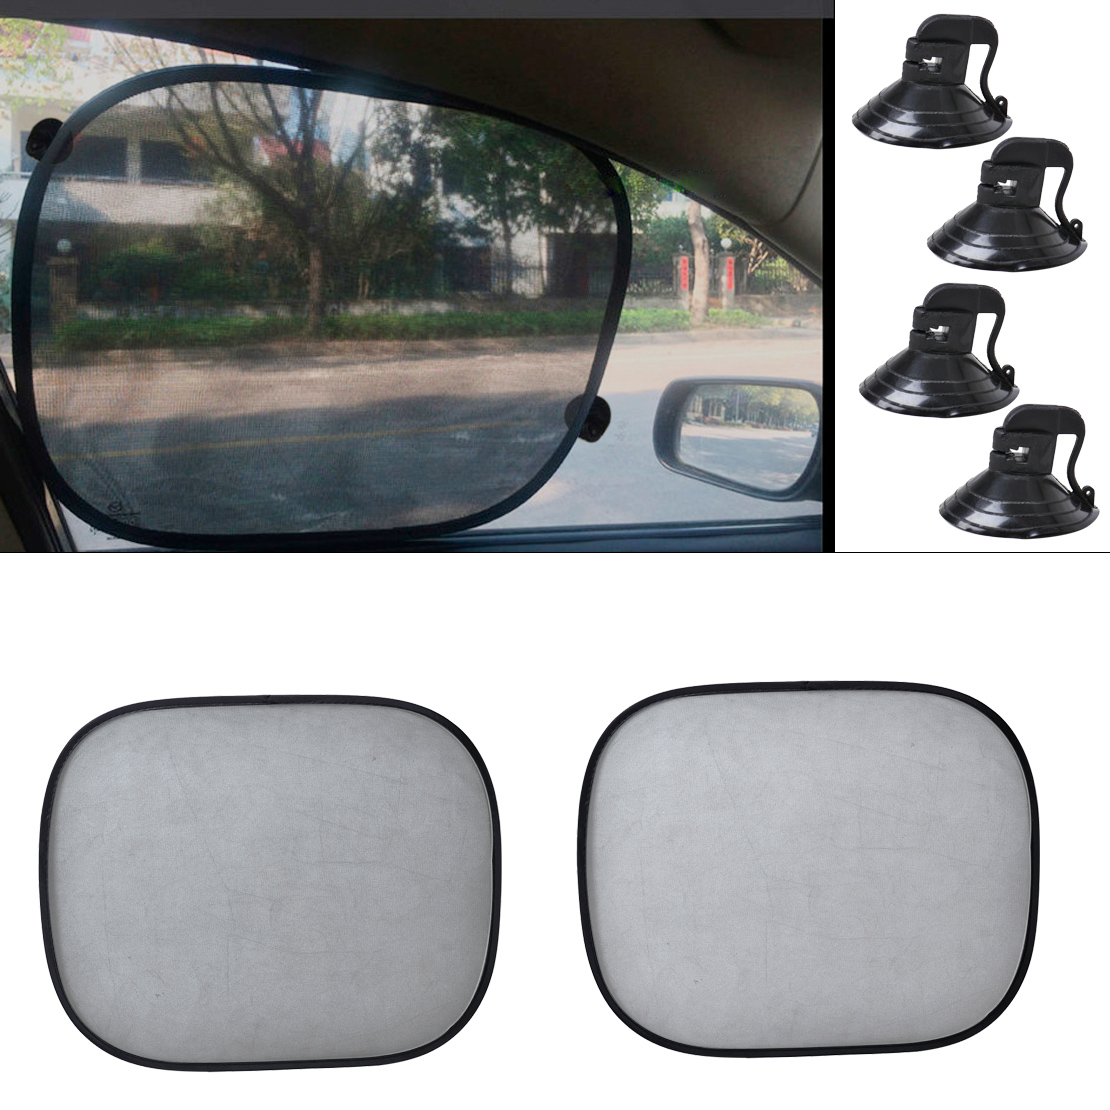 CITALL 2pcs Foldable Car Side Window Sun Shade Screen Mesh-pattern Visor Shield Cover for Audi A4 A6 BMW E90 Kia Rio Mazda 3 6 image